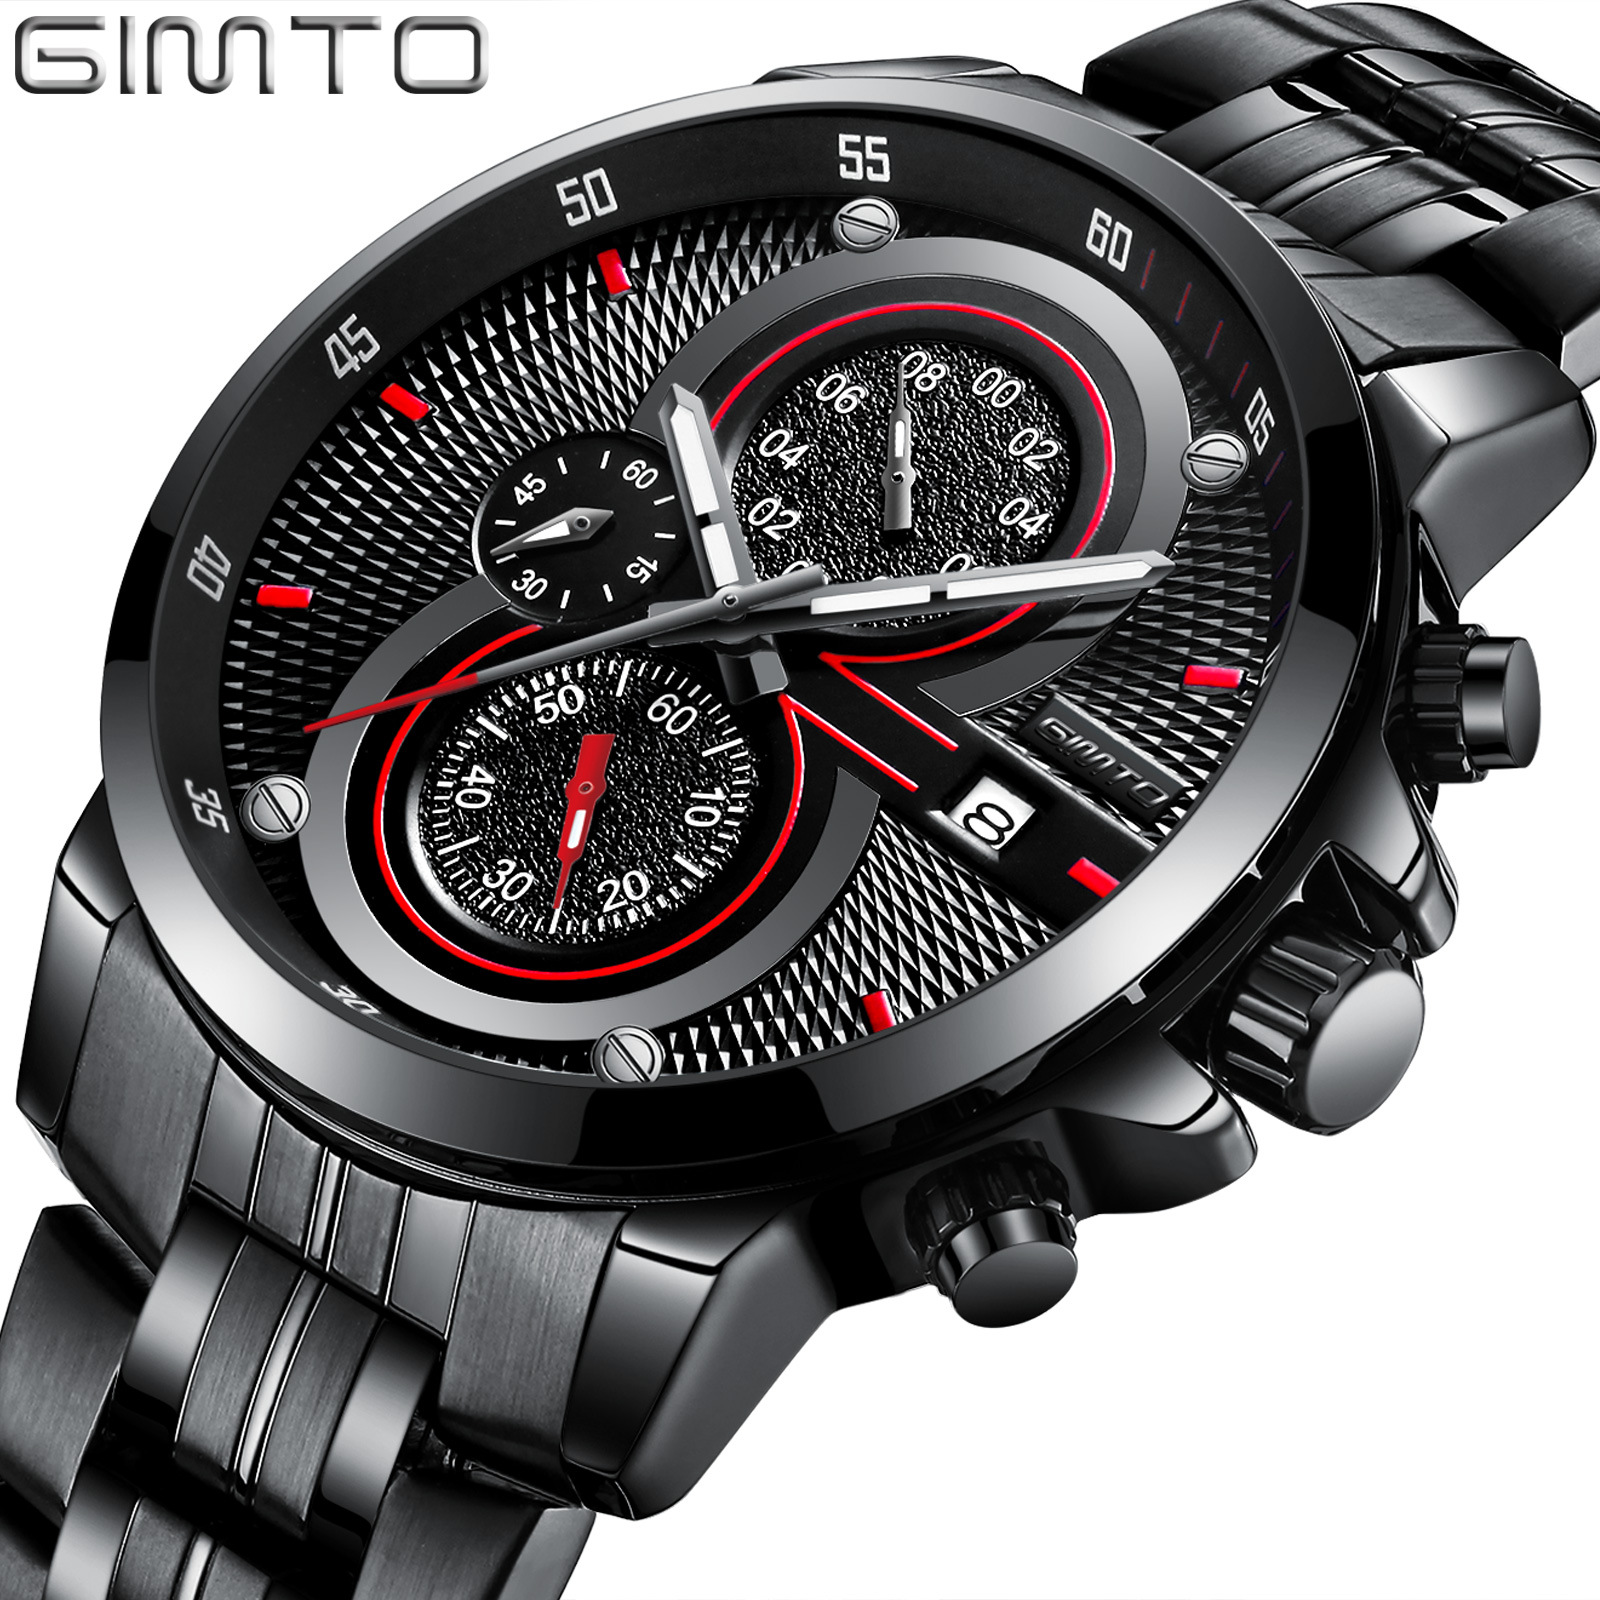 GIMTO Cool Sport Watch Men Stainless Steel Band Luxury Black Military Quartz Watches Male Waterproof Casual Relogio Masculino stylish black sport men watch luxury brand gimto fashion stainless steel casual cool male s wristwatch 30 meter waterproof